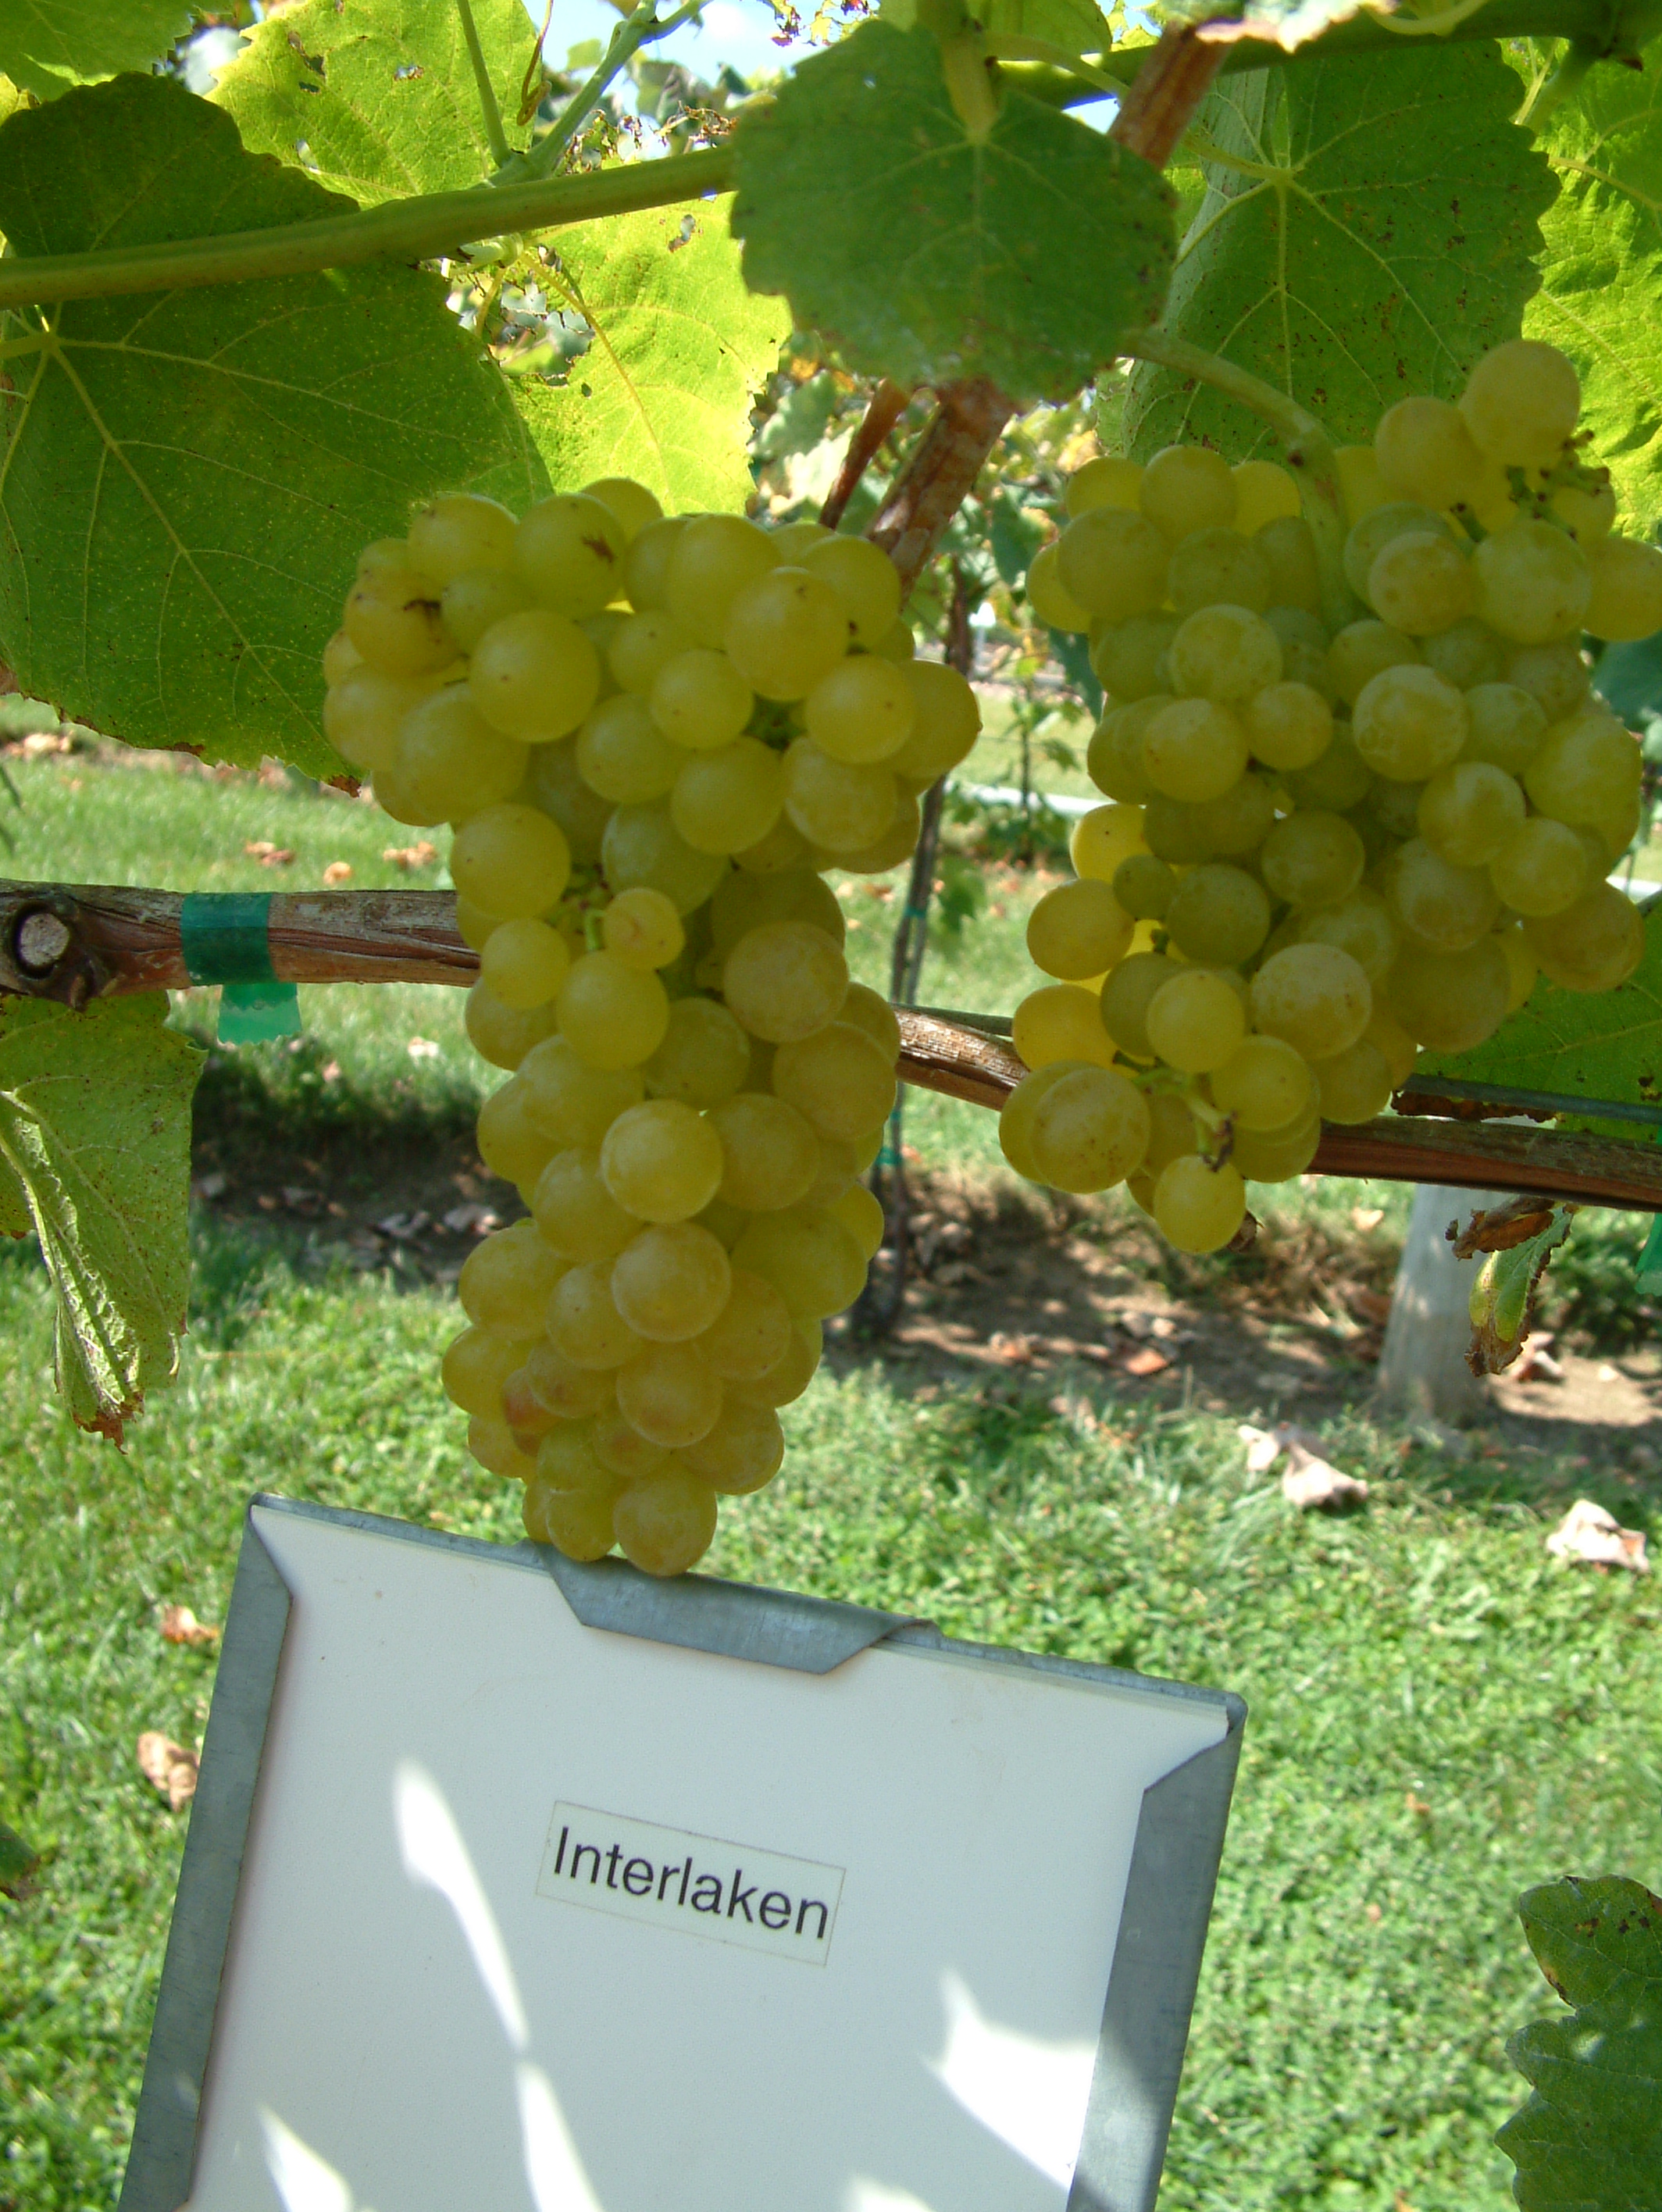 Interlaken - White Seedless Table Grape